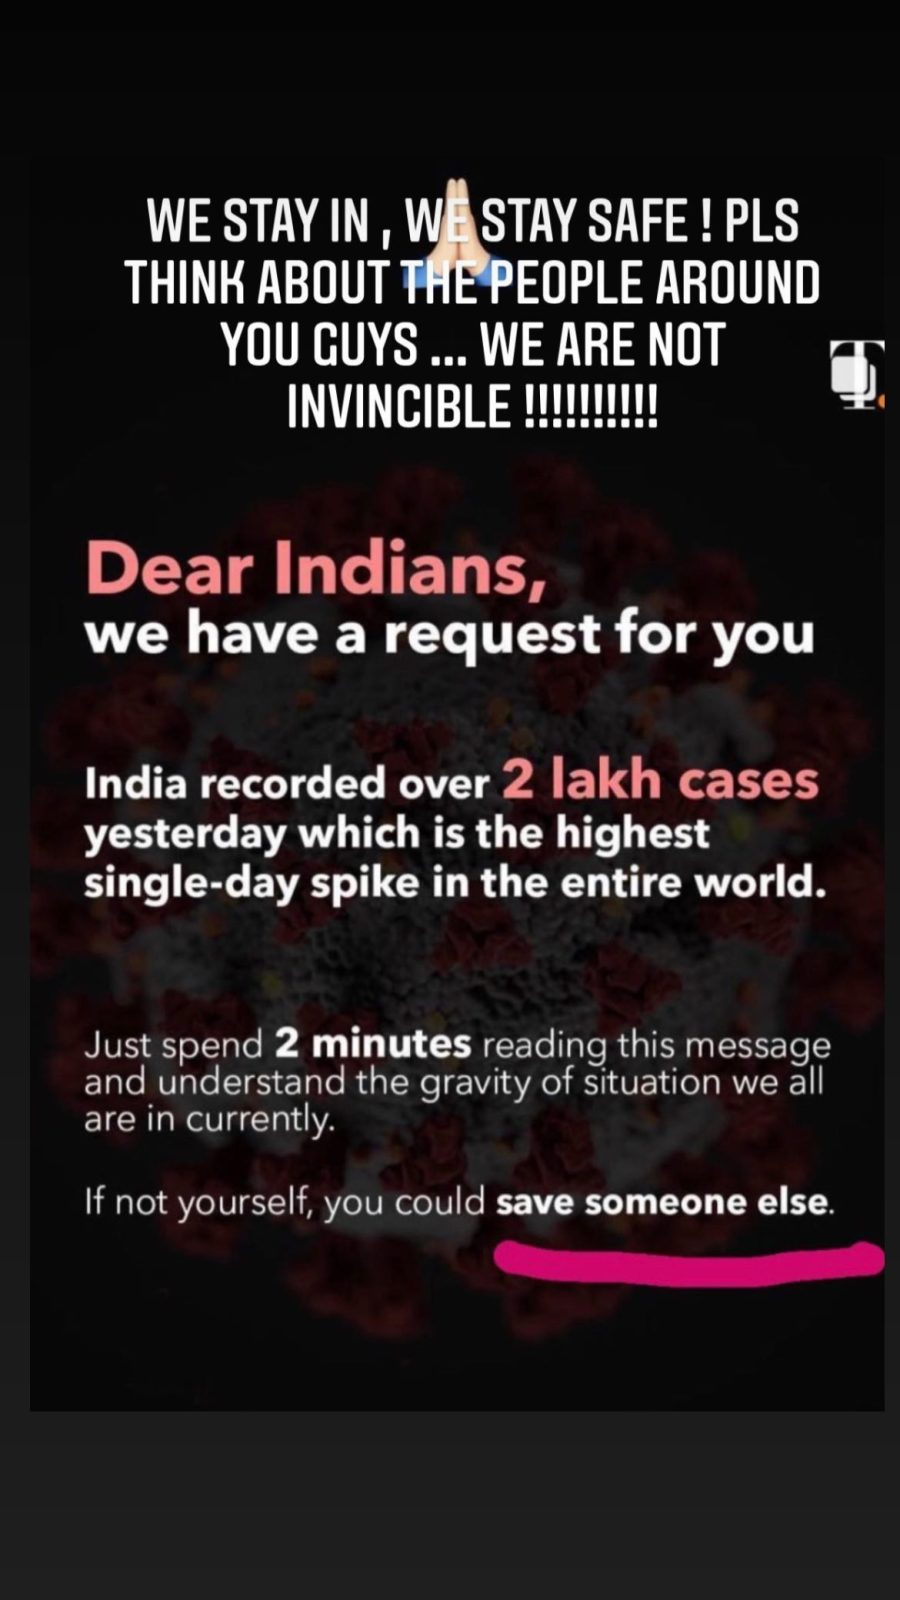 173153517 464898228067794 2667557017260226270 n - Daily Mail India